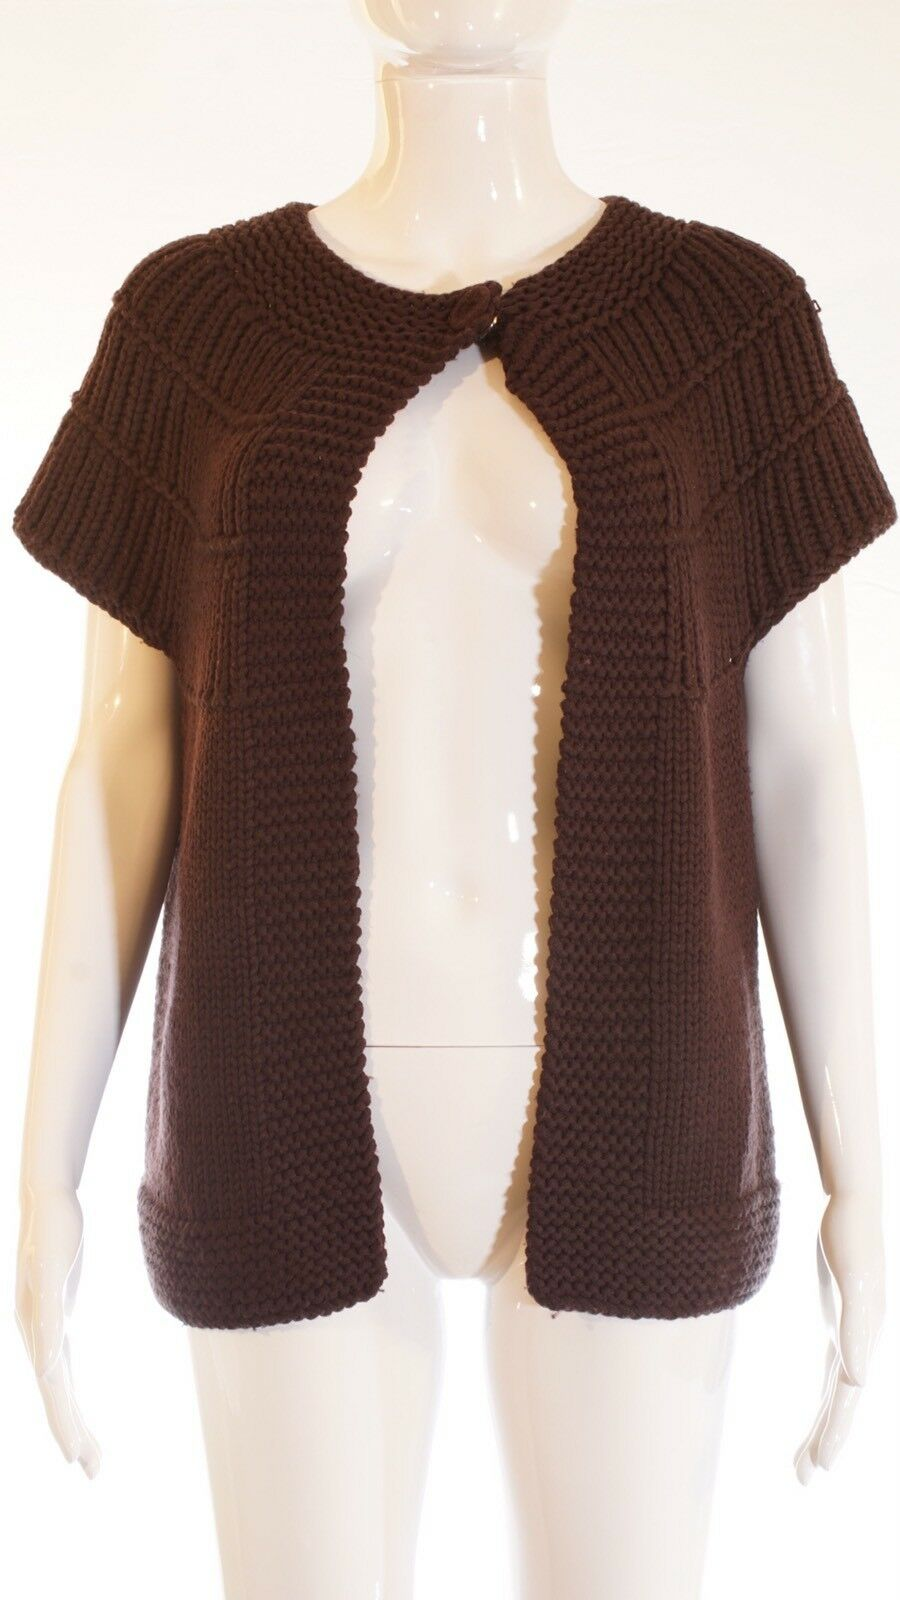 Paul & Joe Sweater Top Size Medium color Brown 100% Merino Wool